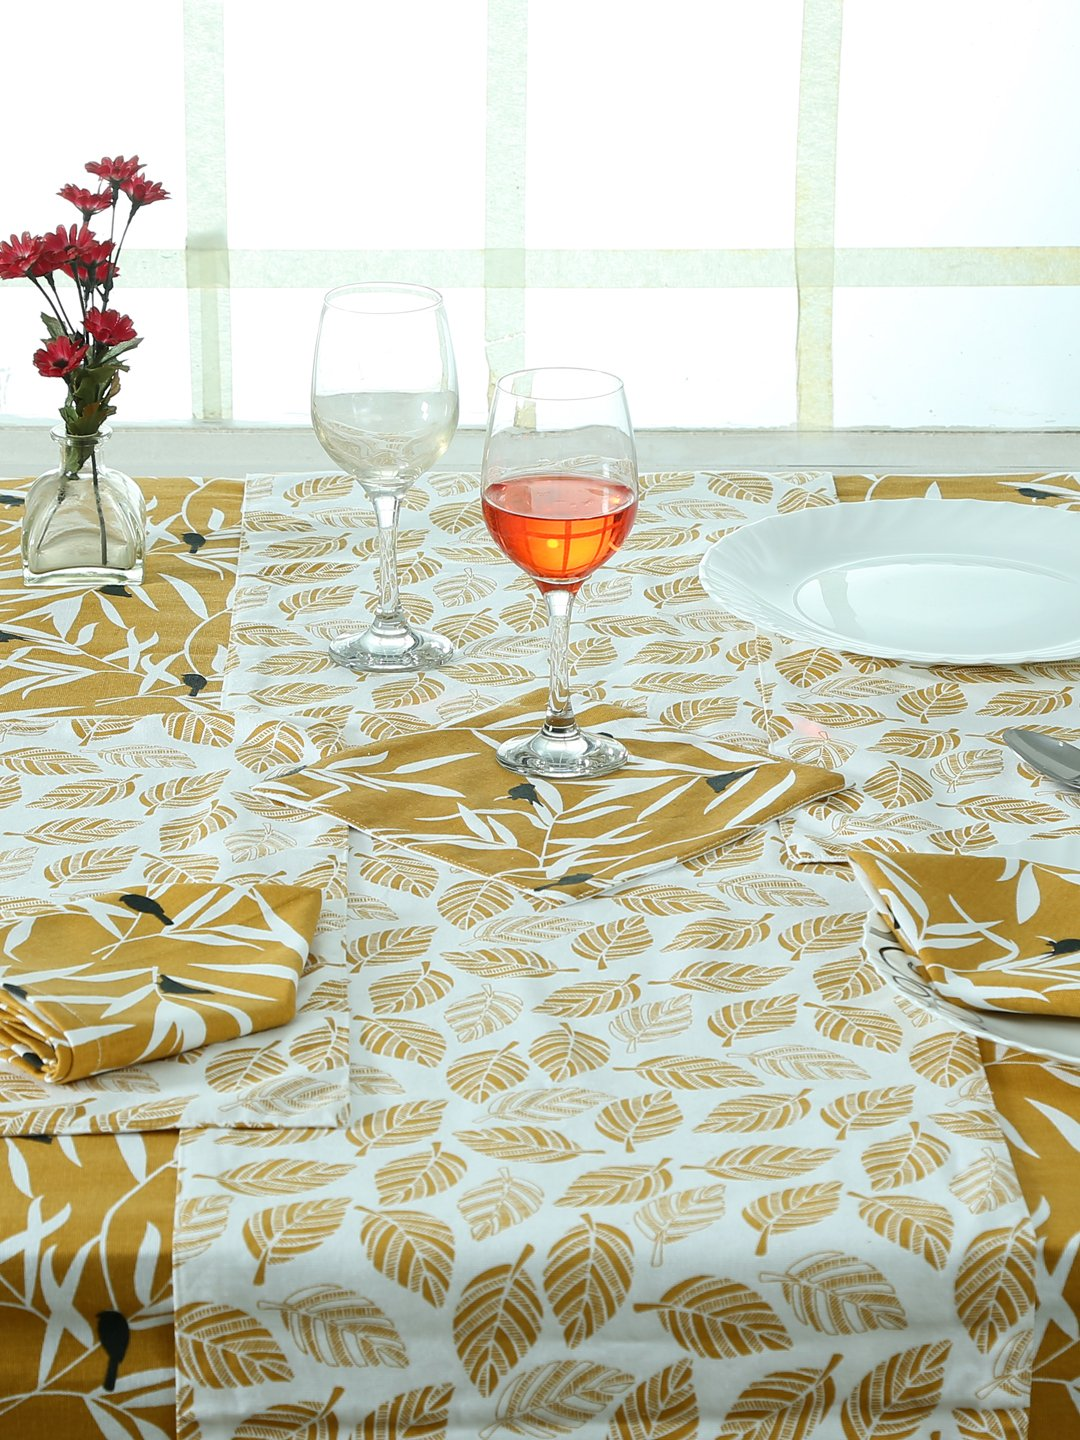 Handcrafted Floral Brown Set of Table Linen (16 Pcs)